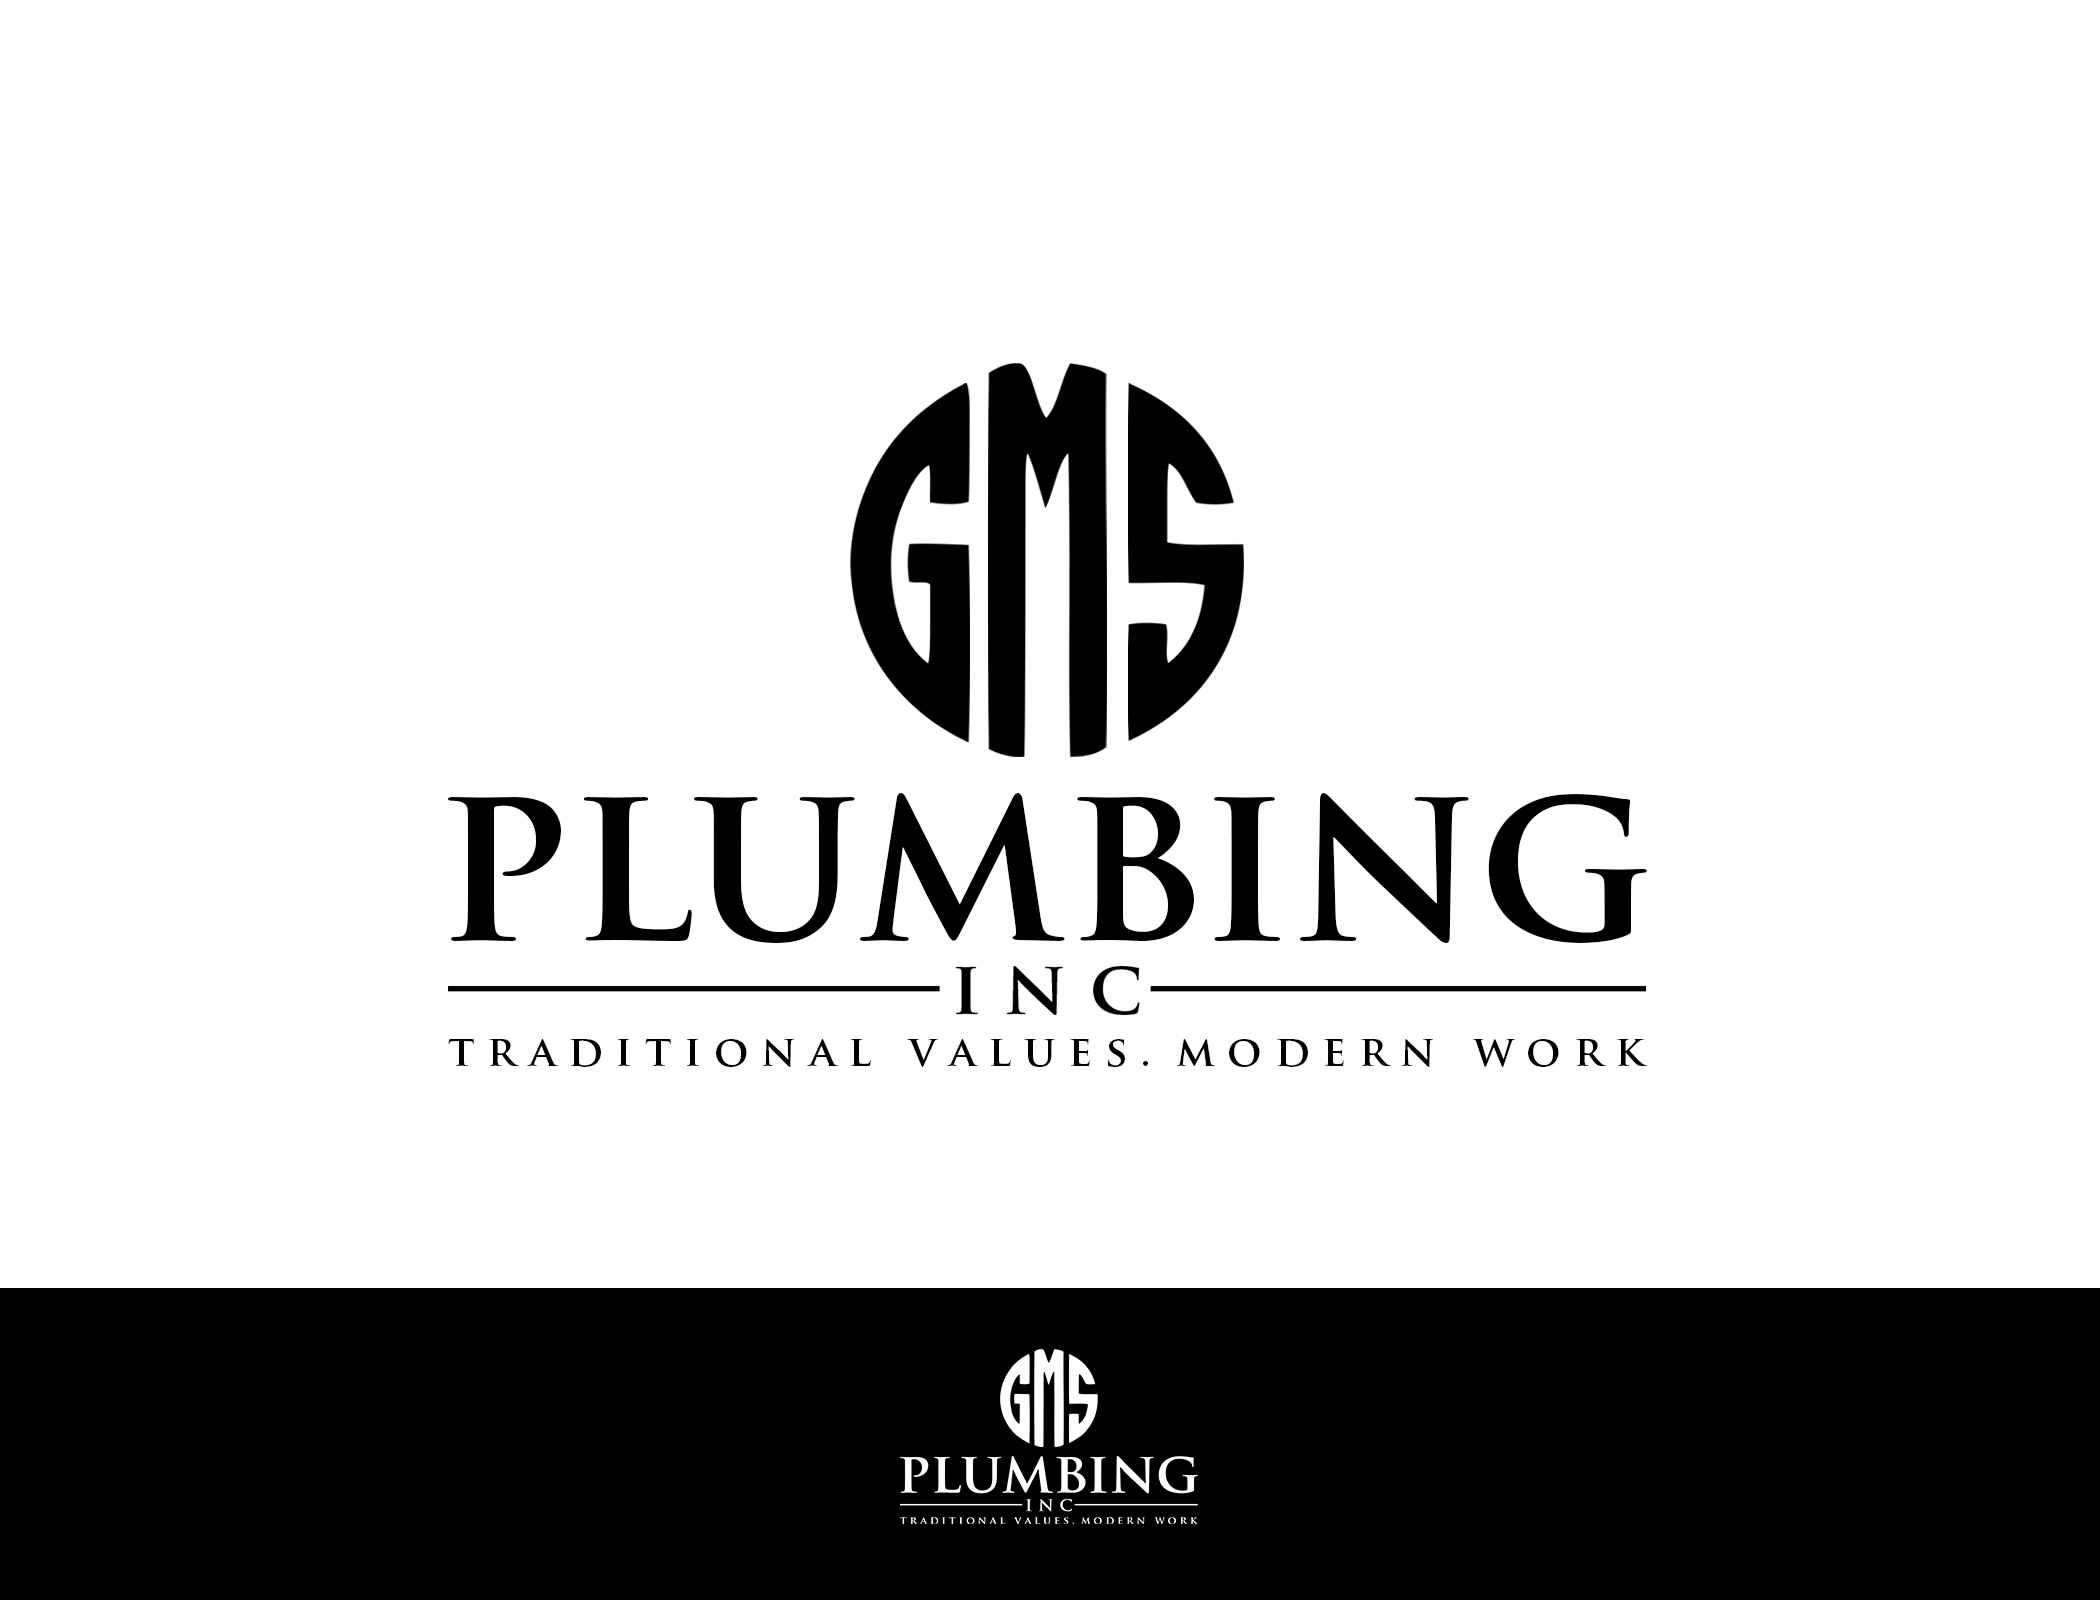 Modern Logo for a Plumbing Company - Construction